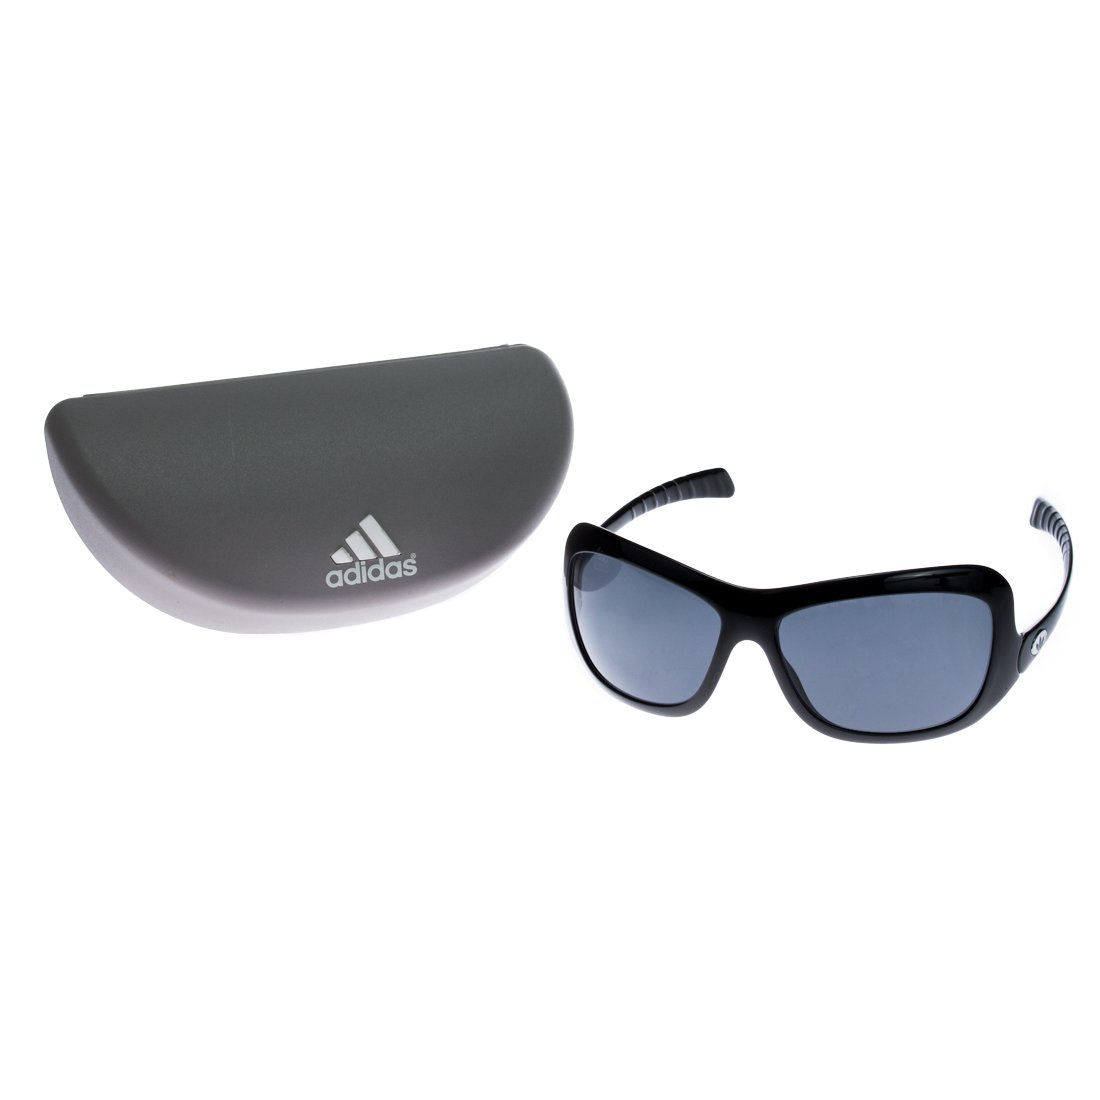 Amazon.com: Adidas Palermo Viejo Sunglasses AH08-10-6050 ...